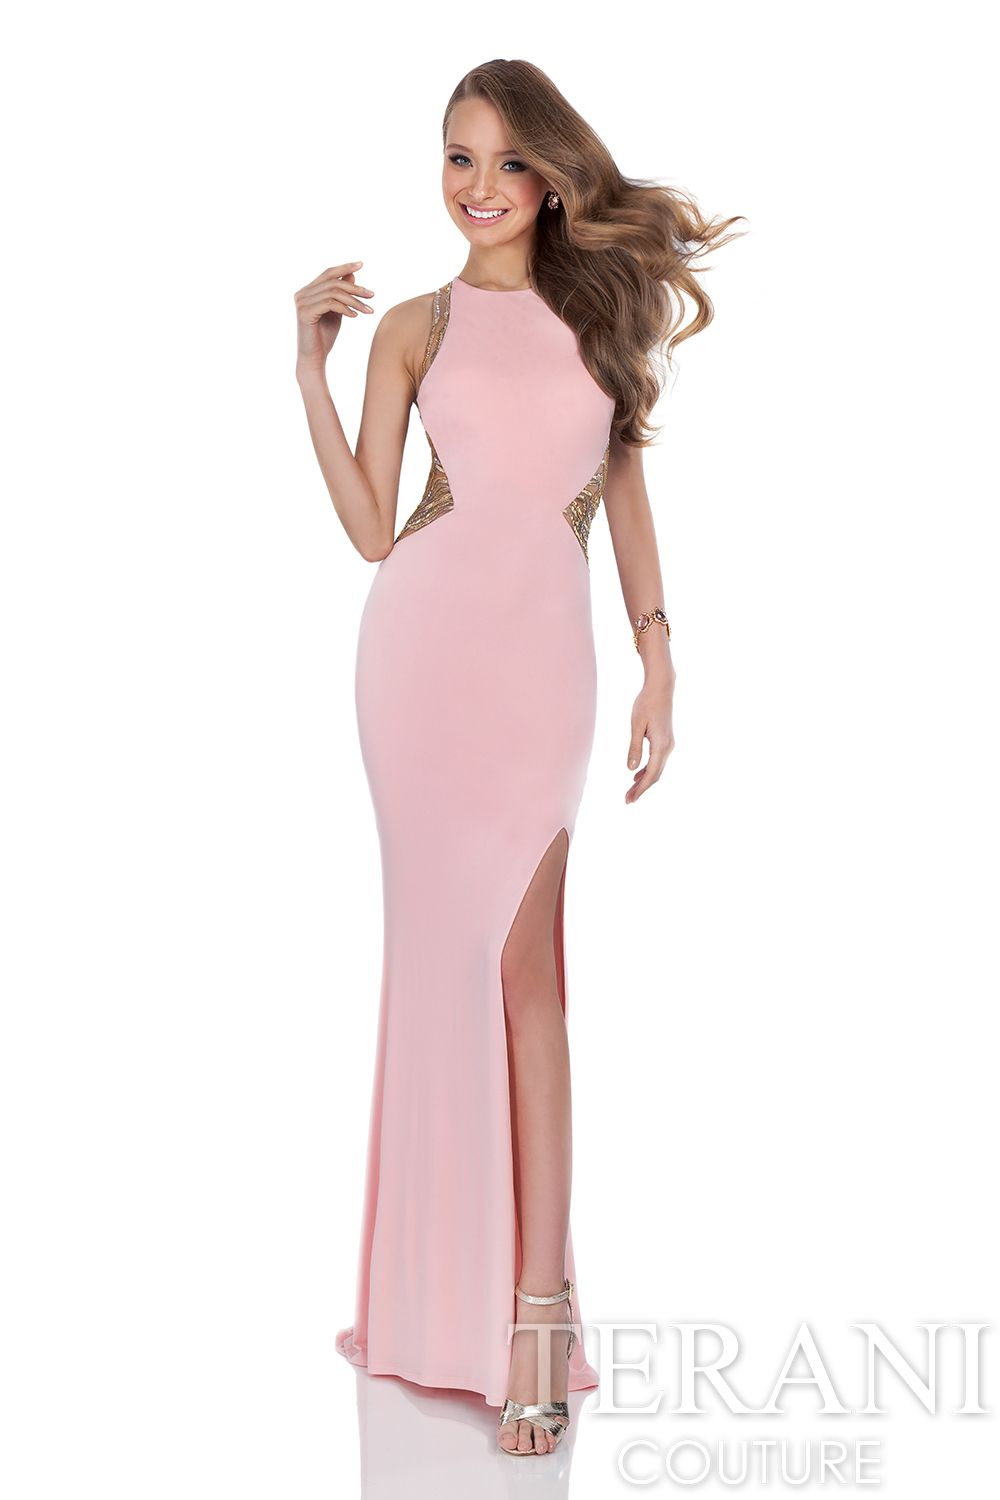 Fitted sheath prom gown with jewel neckline. This prom dress is ...